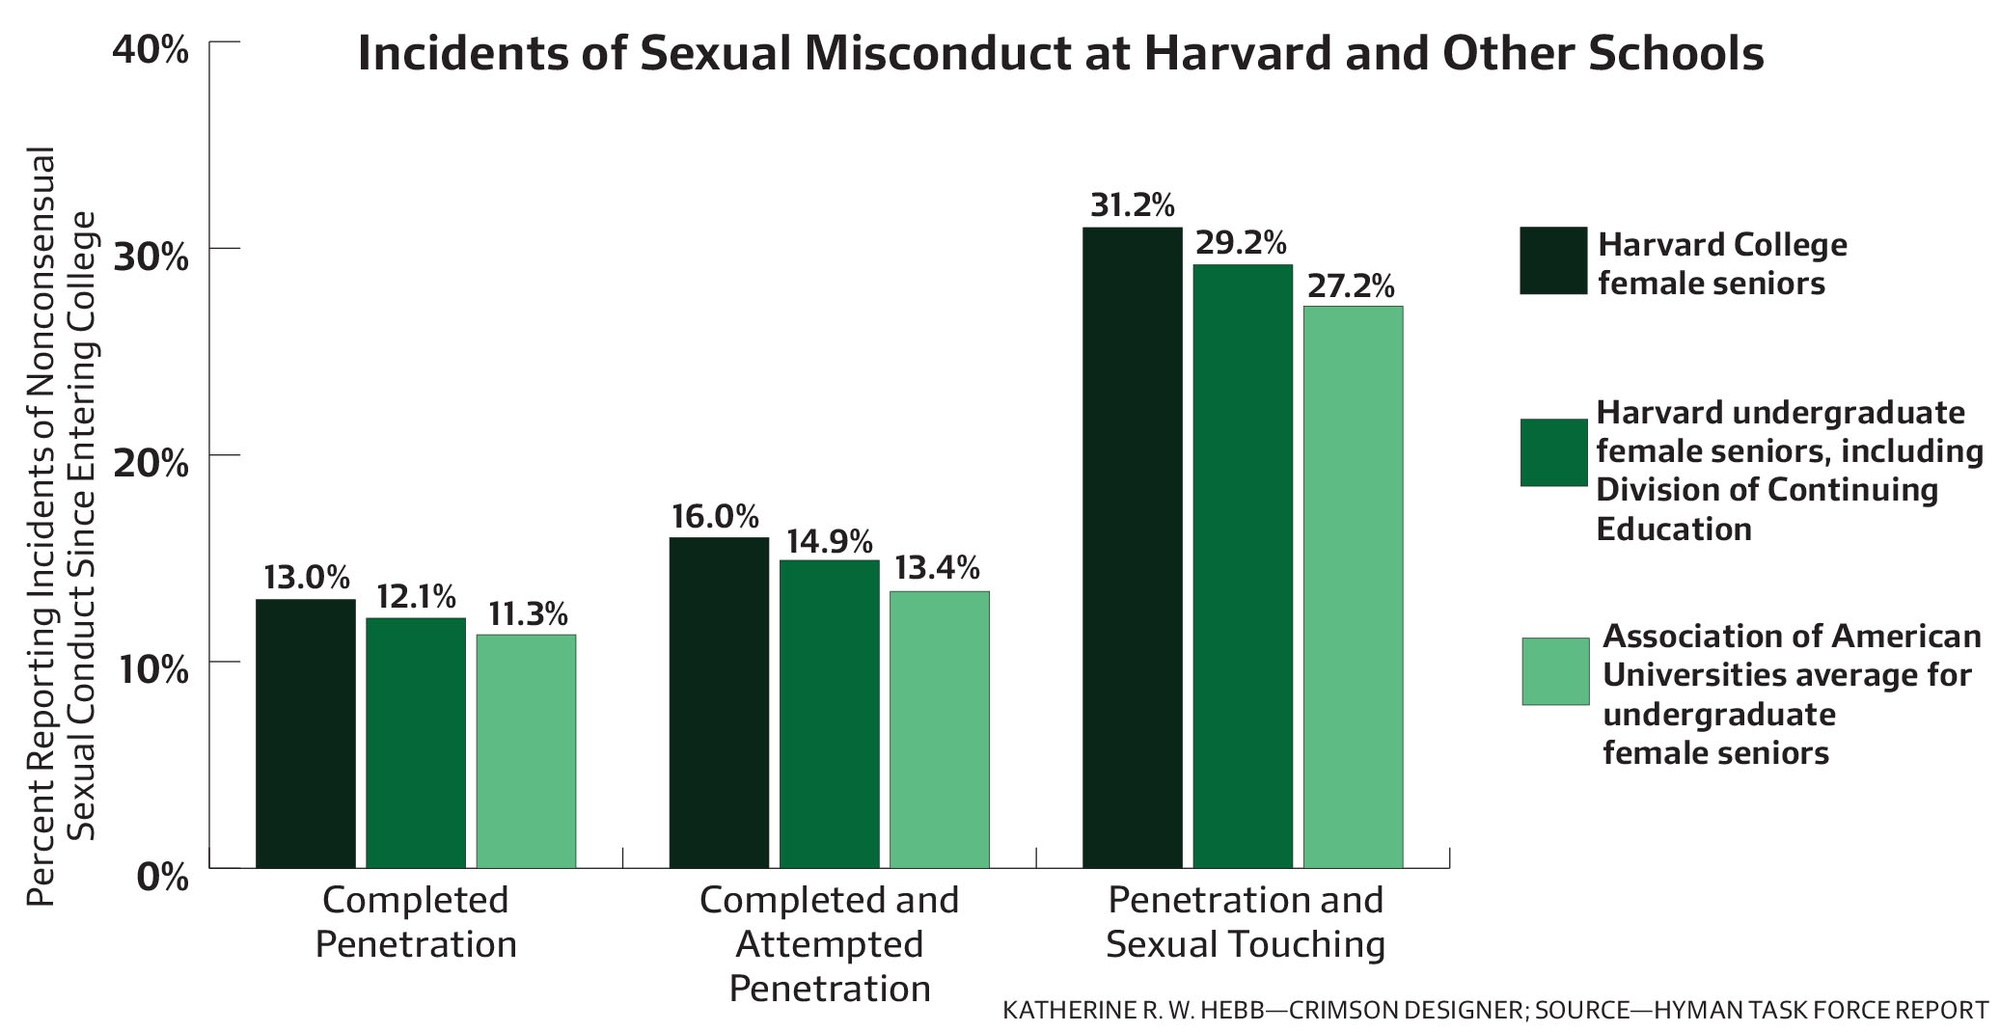 Slightly more than 29 percent of surveyed Harvard senior women—a category which includes some students in the Division of Continuing Education—reported that they had experienced nonconsensual penetration and sexual touching since coming to college. The rate was 27.2 across all 27 schools that participated in the Association of American Universities survey. When Harvard DCE students were removed, the prevalence rate of nonconsensual penetration and sexual touching rose from 29.2 percent to 31.2 percent of Harvard respondents, according to a report from former Harvard Provost Steven E. Hyman.